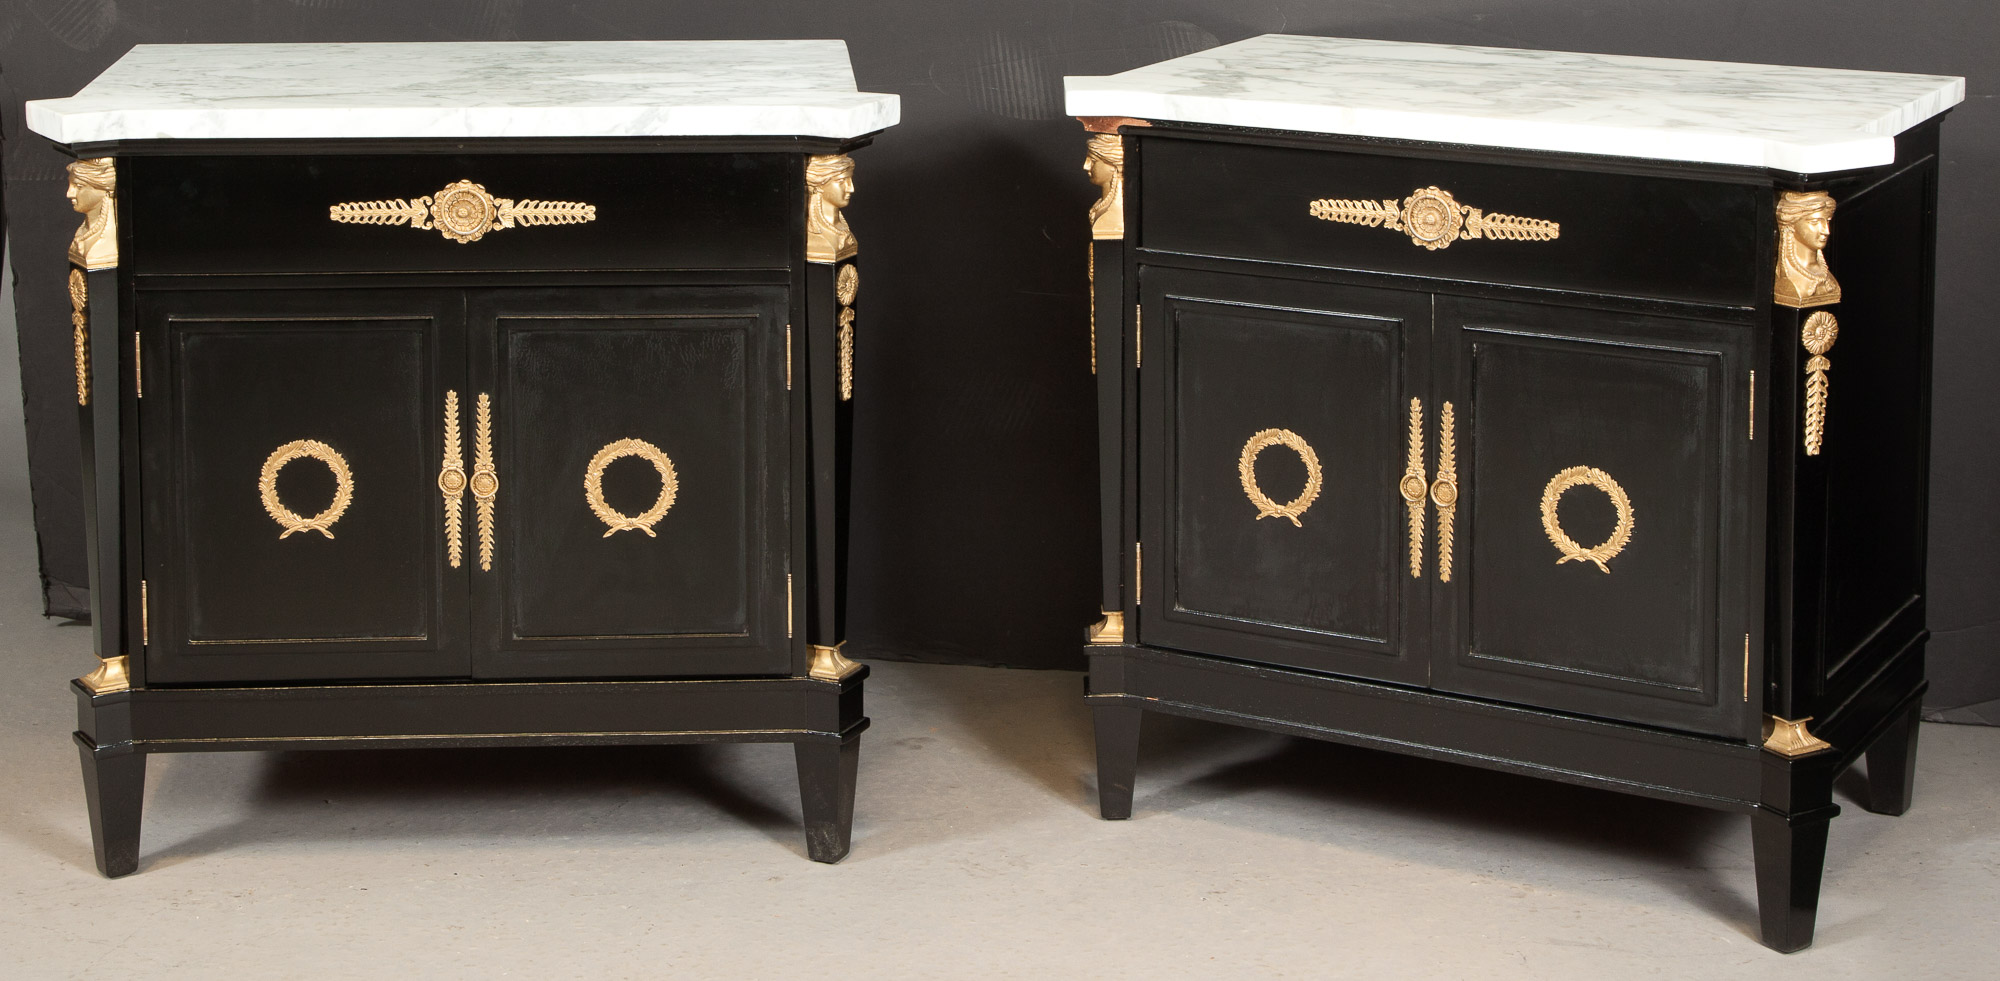 Lot image - Pair of Empire Style Bronze Mounted Black Lacquer White Marble Top Bedside Cabinets